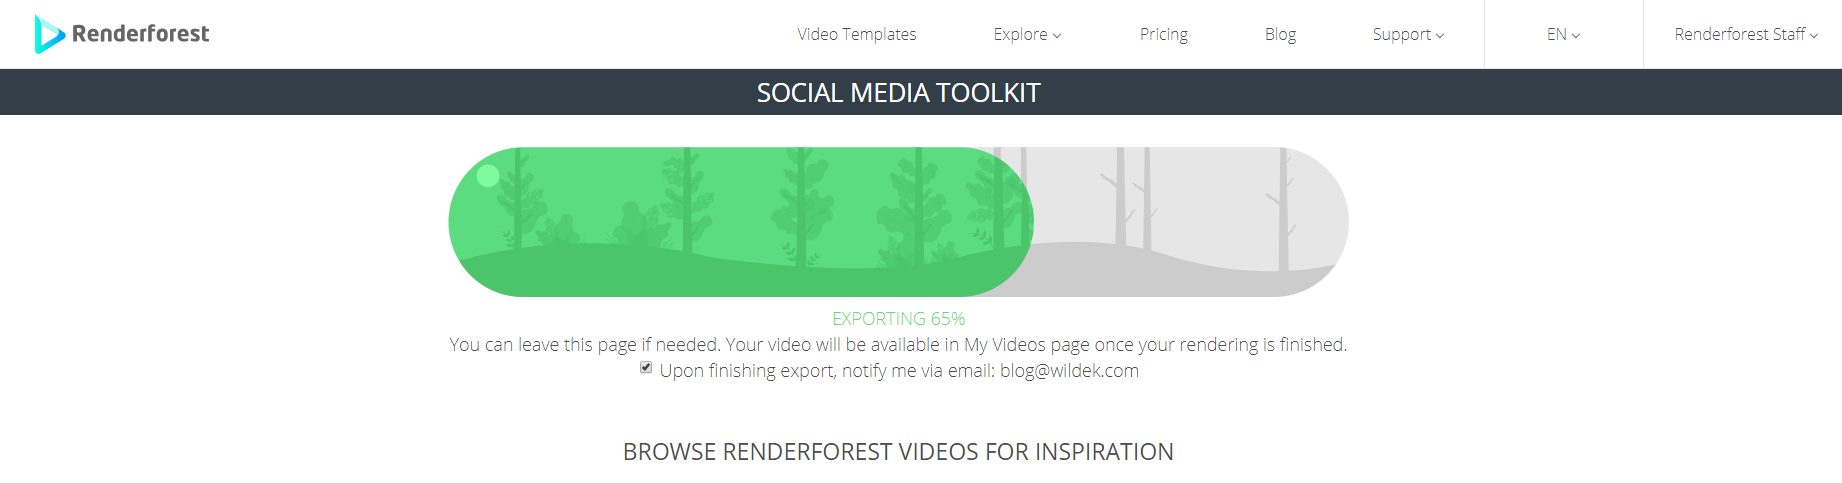 Renderforest Видео Экспорт